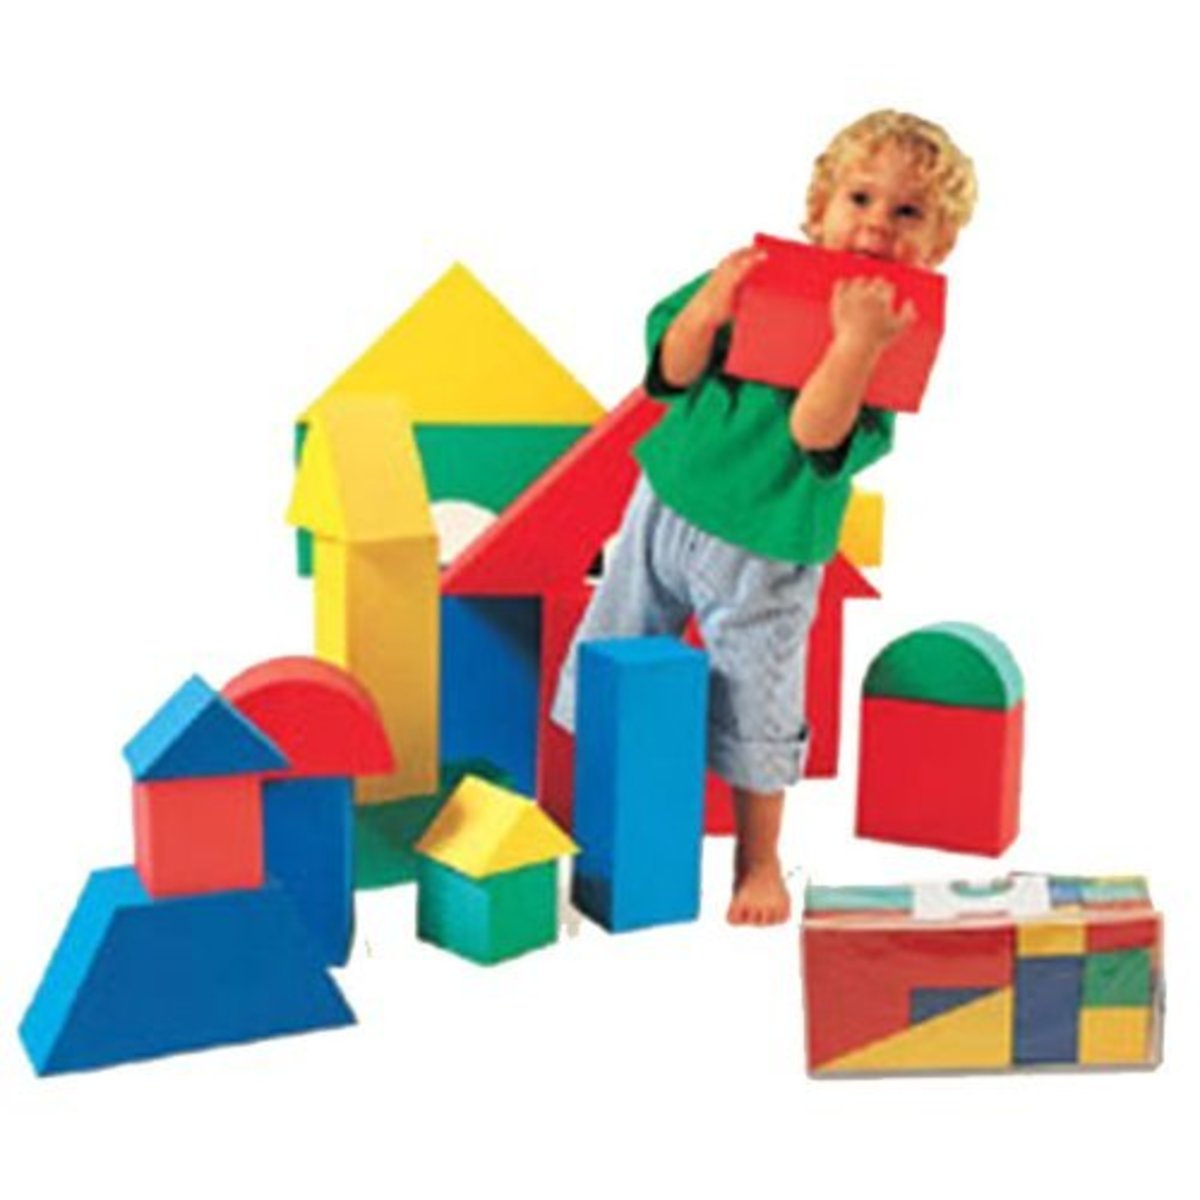 Giant foam blocks are easy for toddlers to manipulate and they come in a variety of appealing shapes and colors.